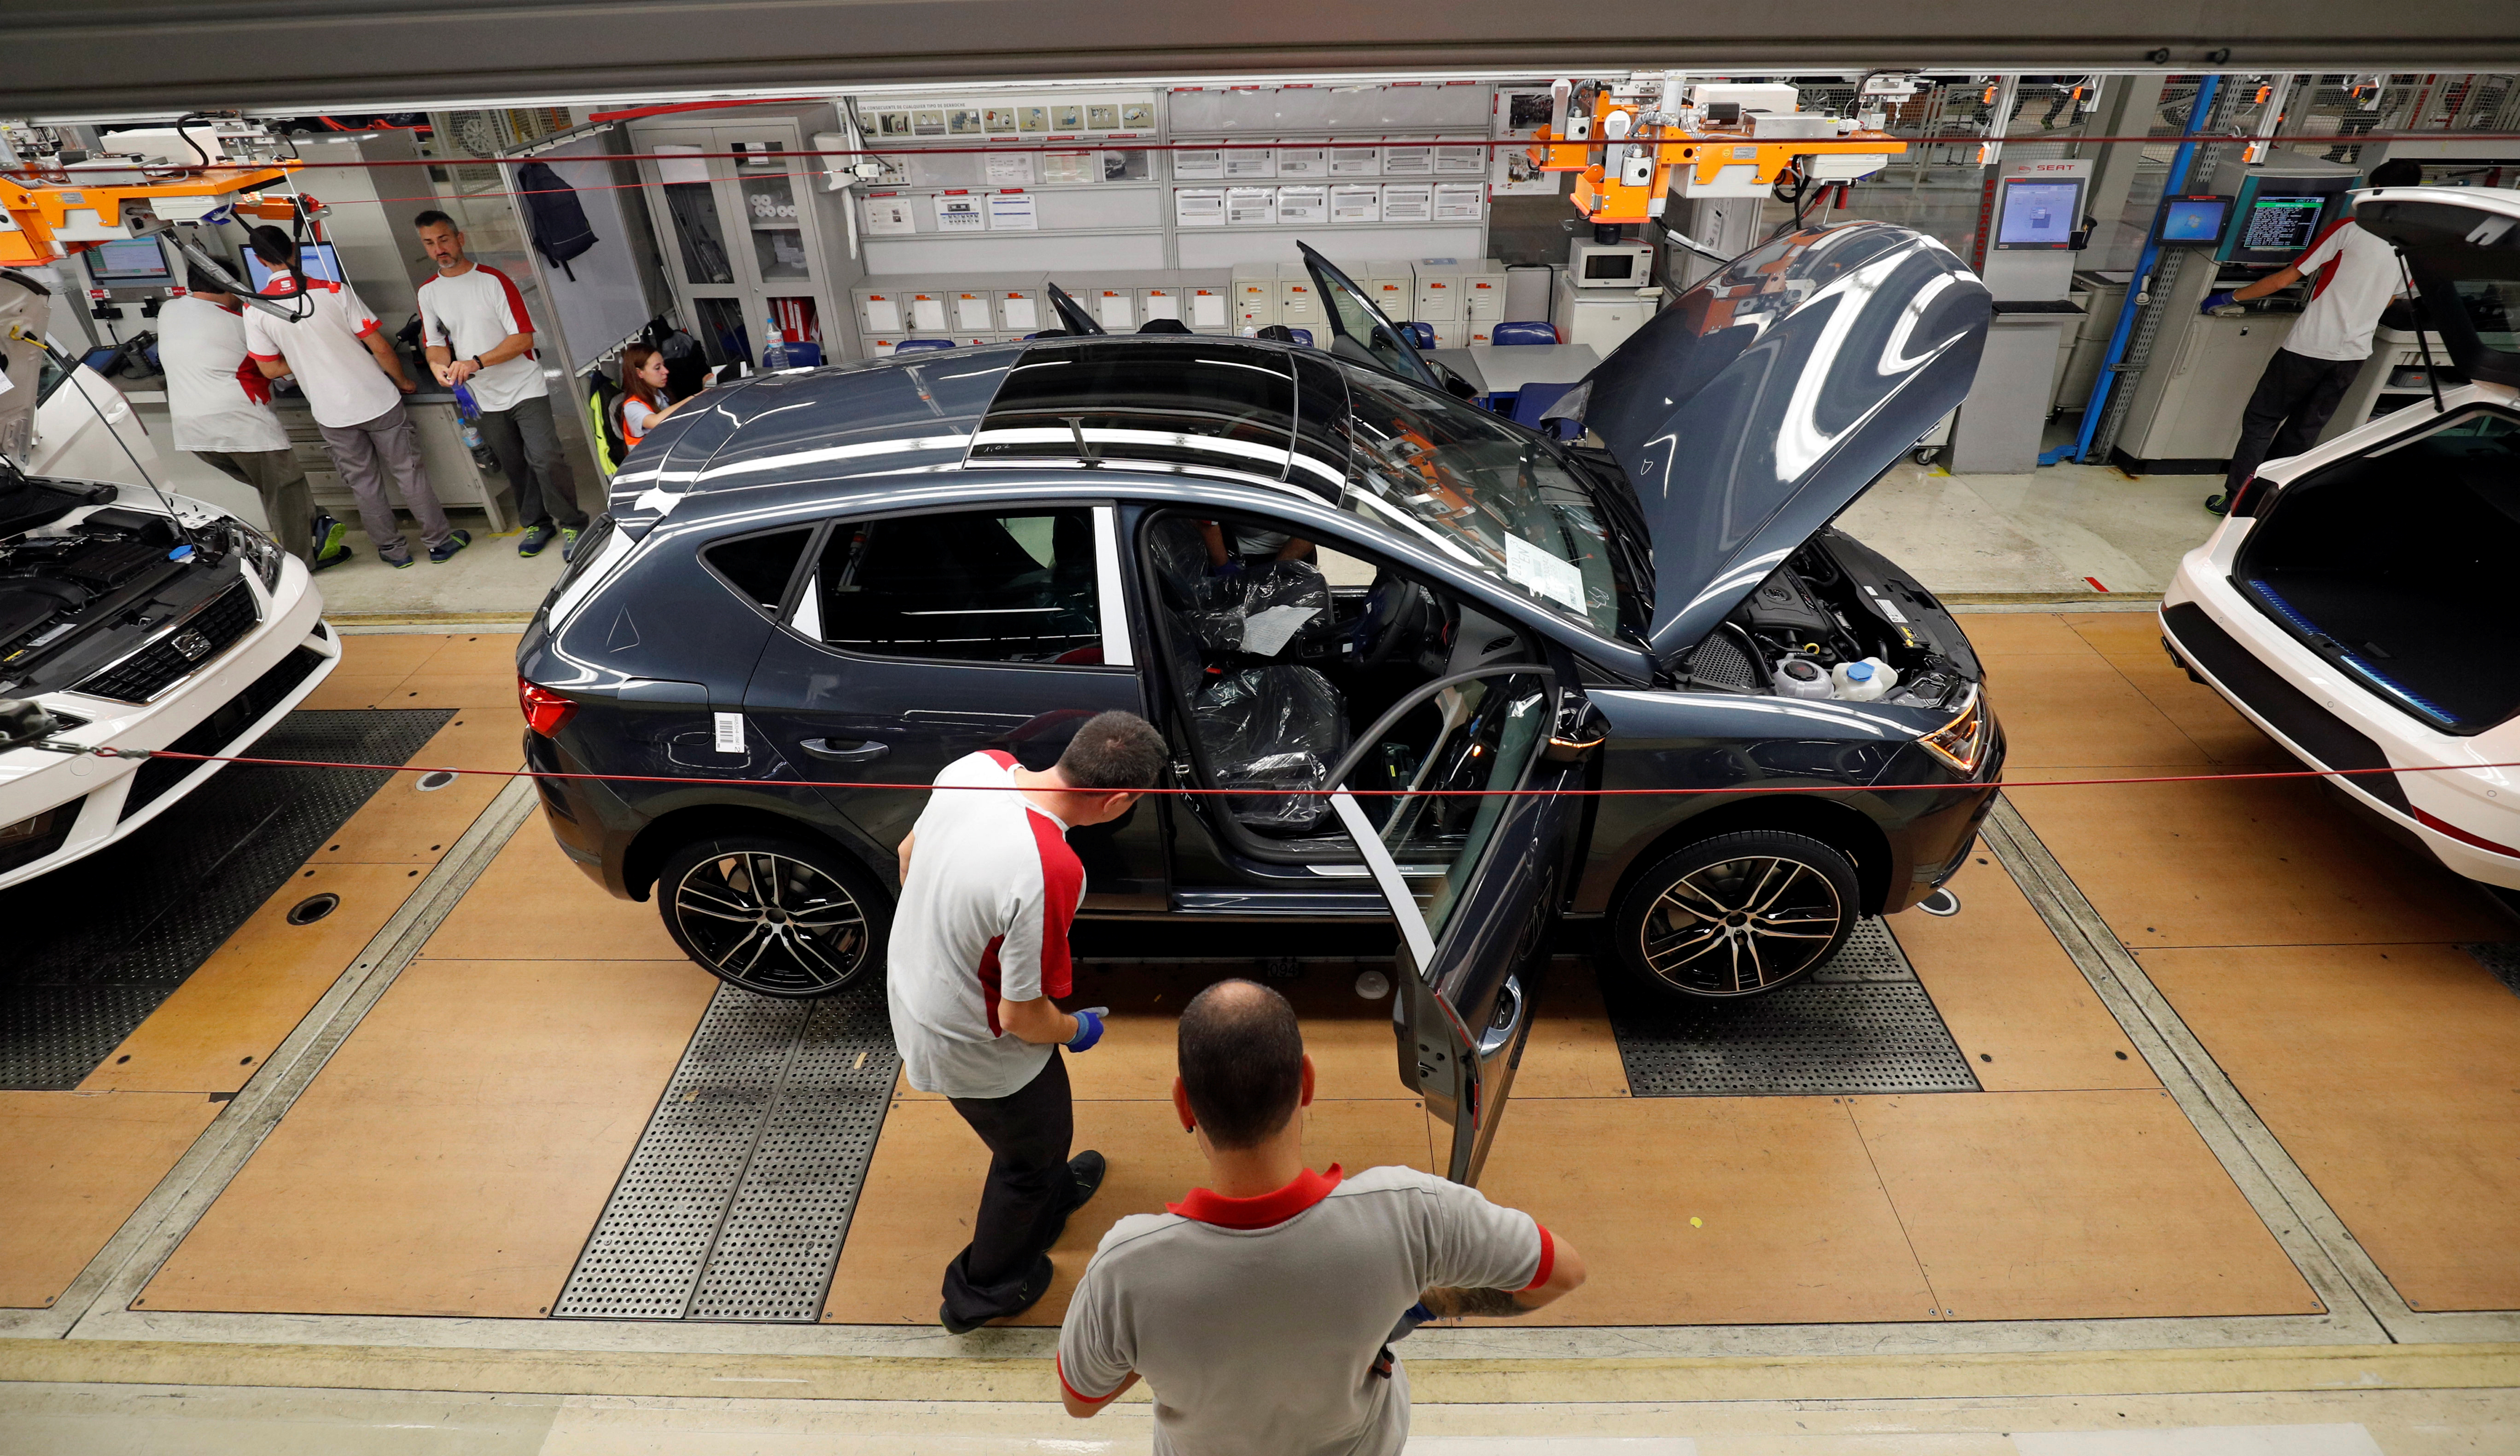 Workers put together vehicles on the assembly line of the SEAT car factory in Martorell, near Barcelona, Spain, Oct. 31, 2018.